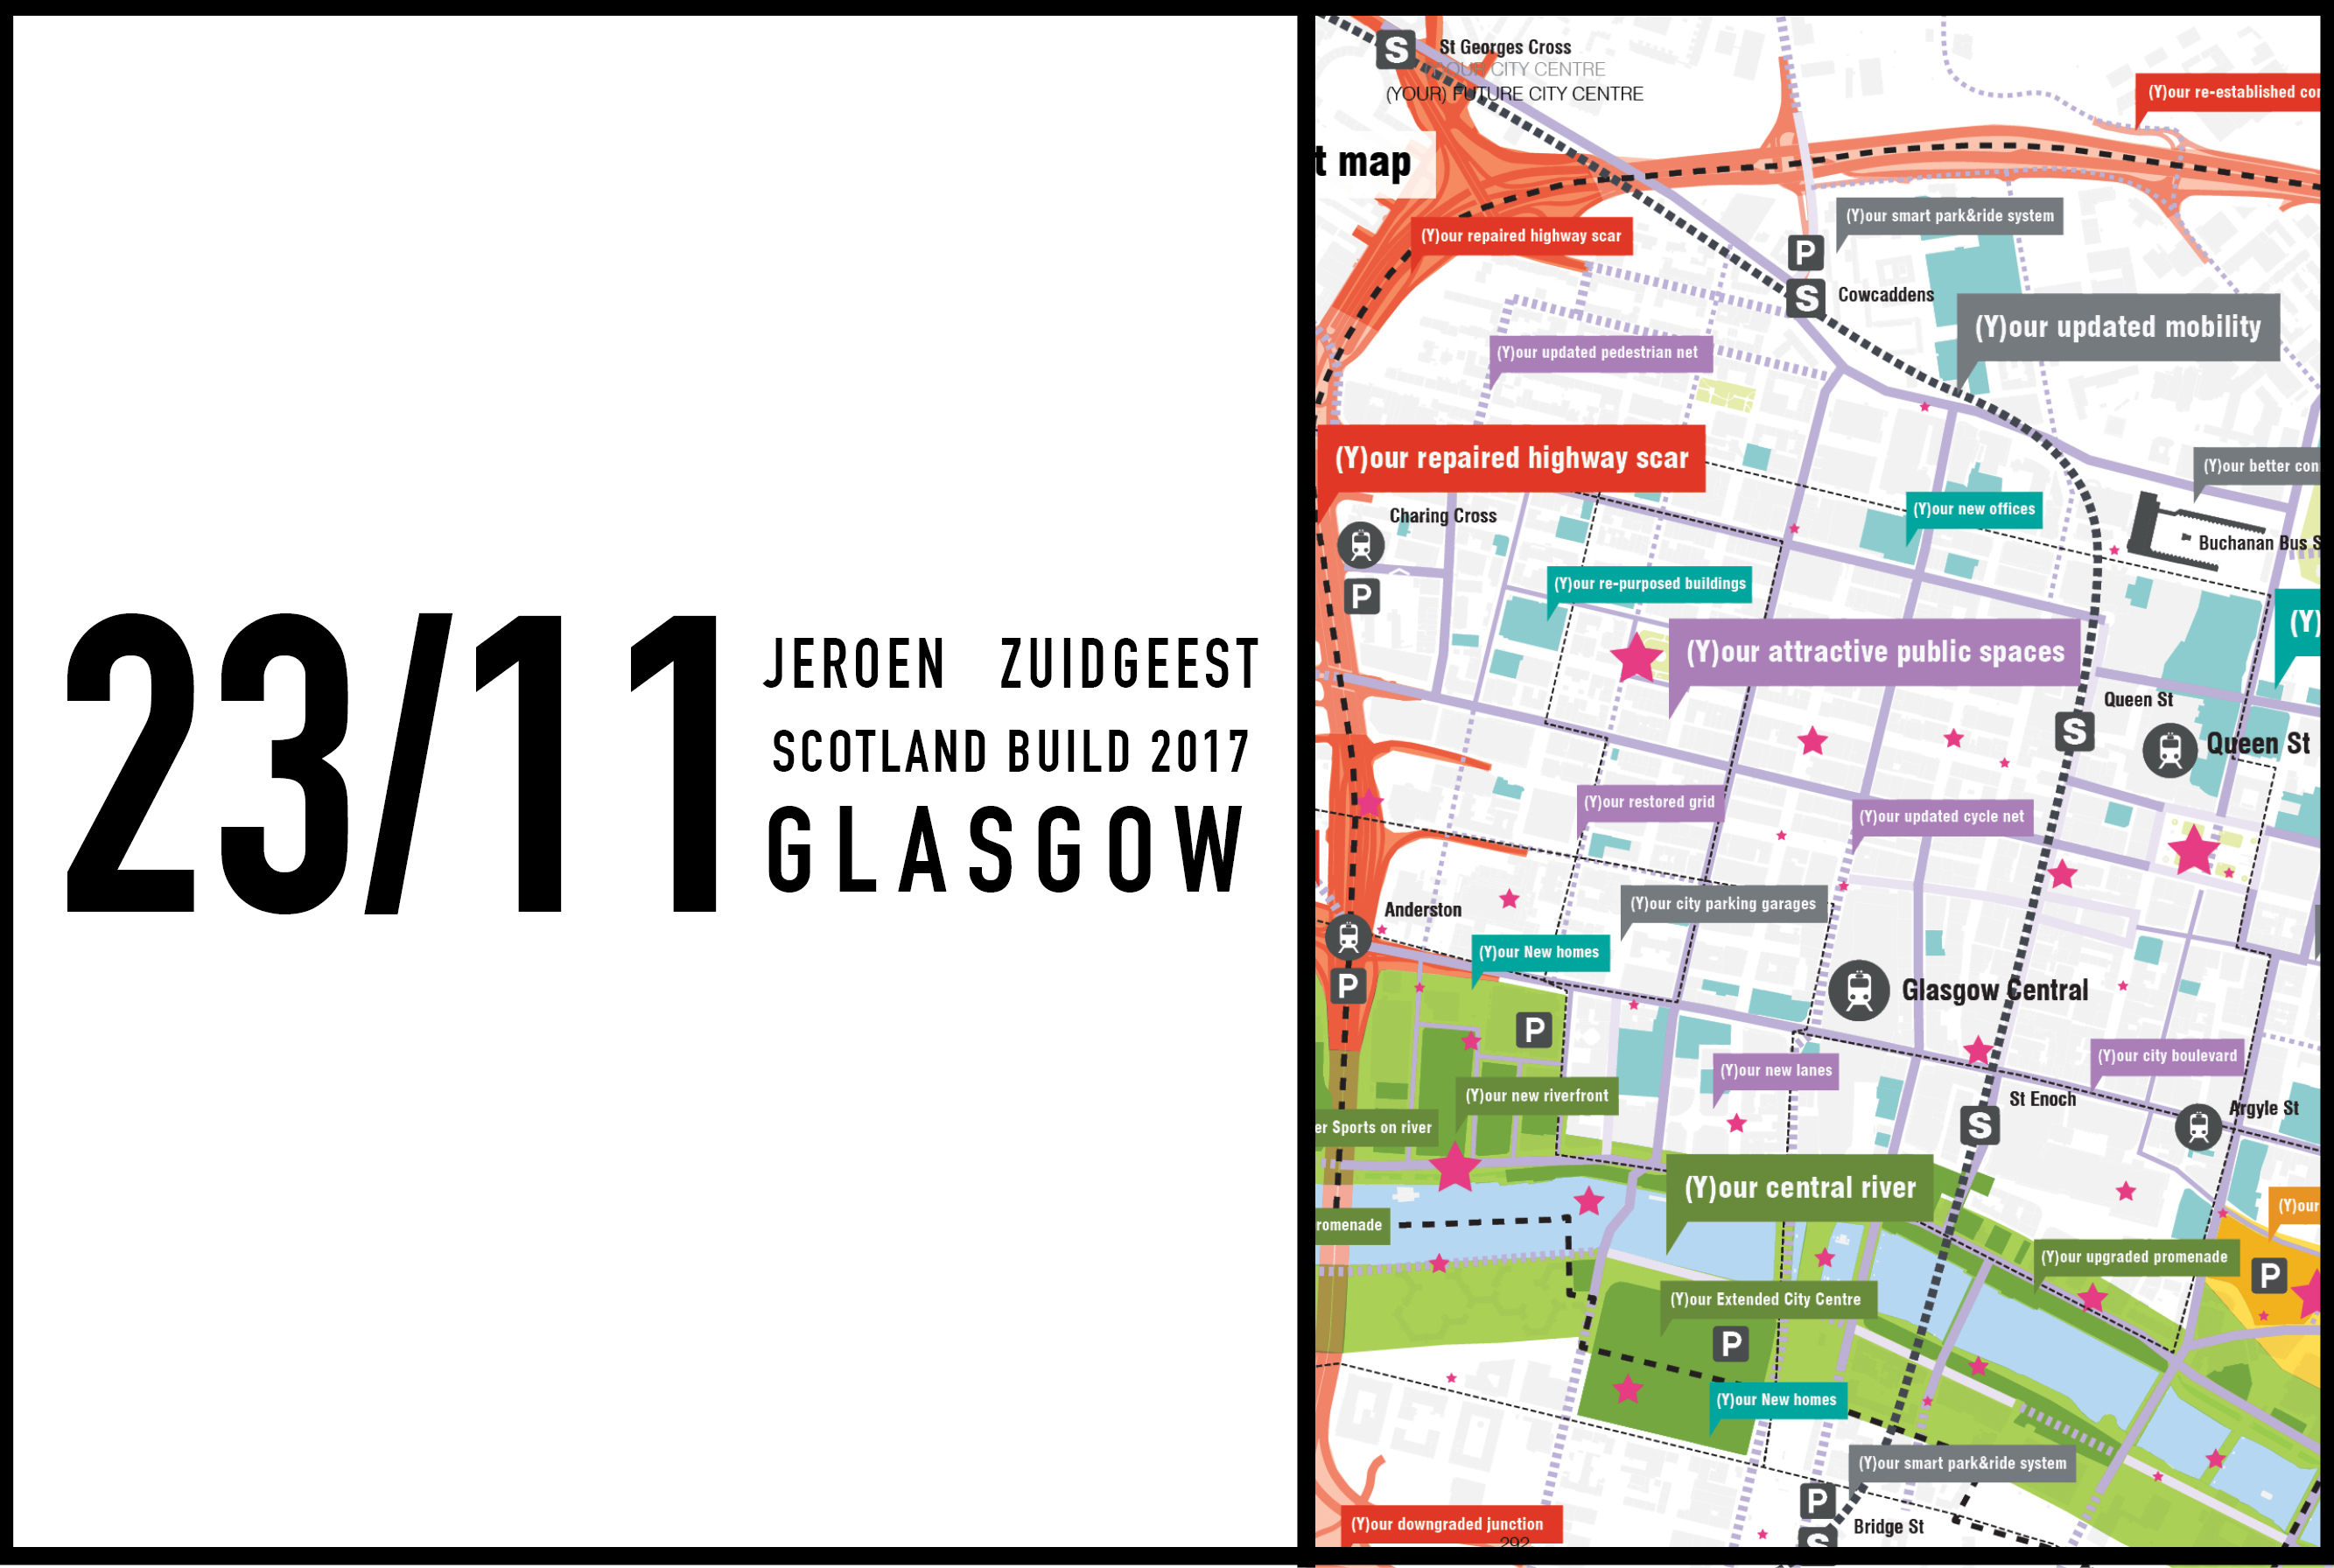 MVRDV Partner, Jeroen Zuidgeest to give a joint lecture Scotland Build 2017